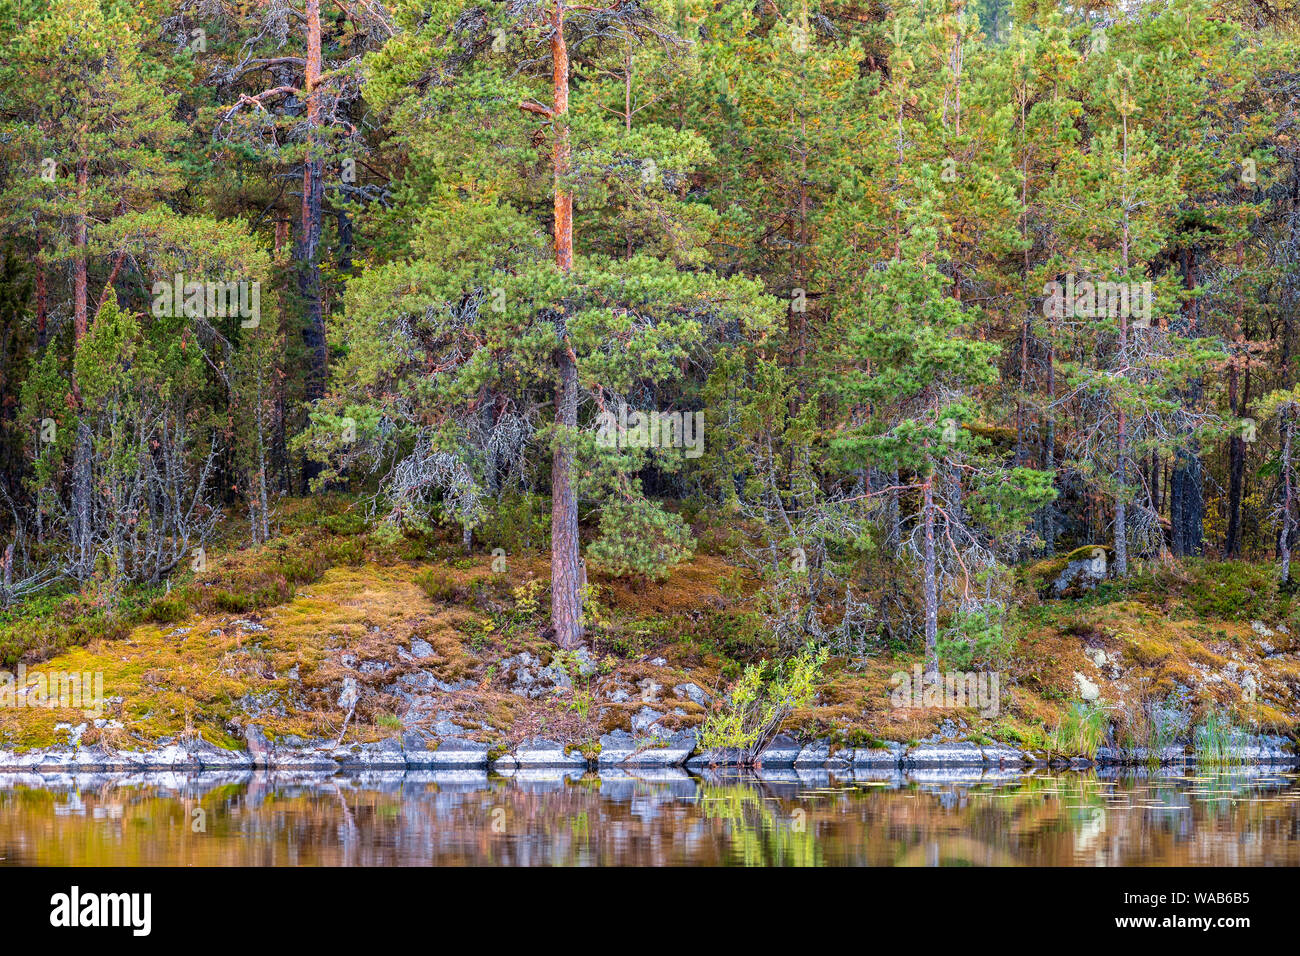 Finnish boreal forest with rocks, moss and fern at lake Saimaa, Finland Stock Photo